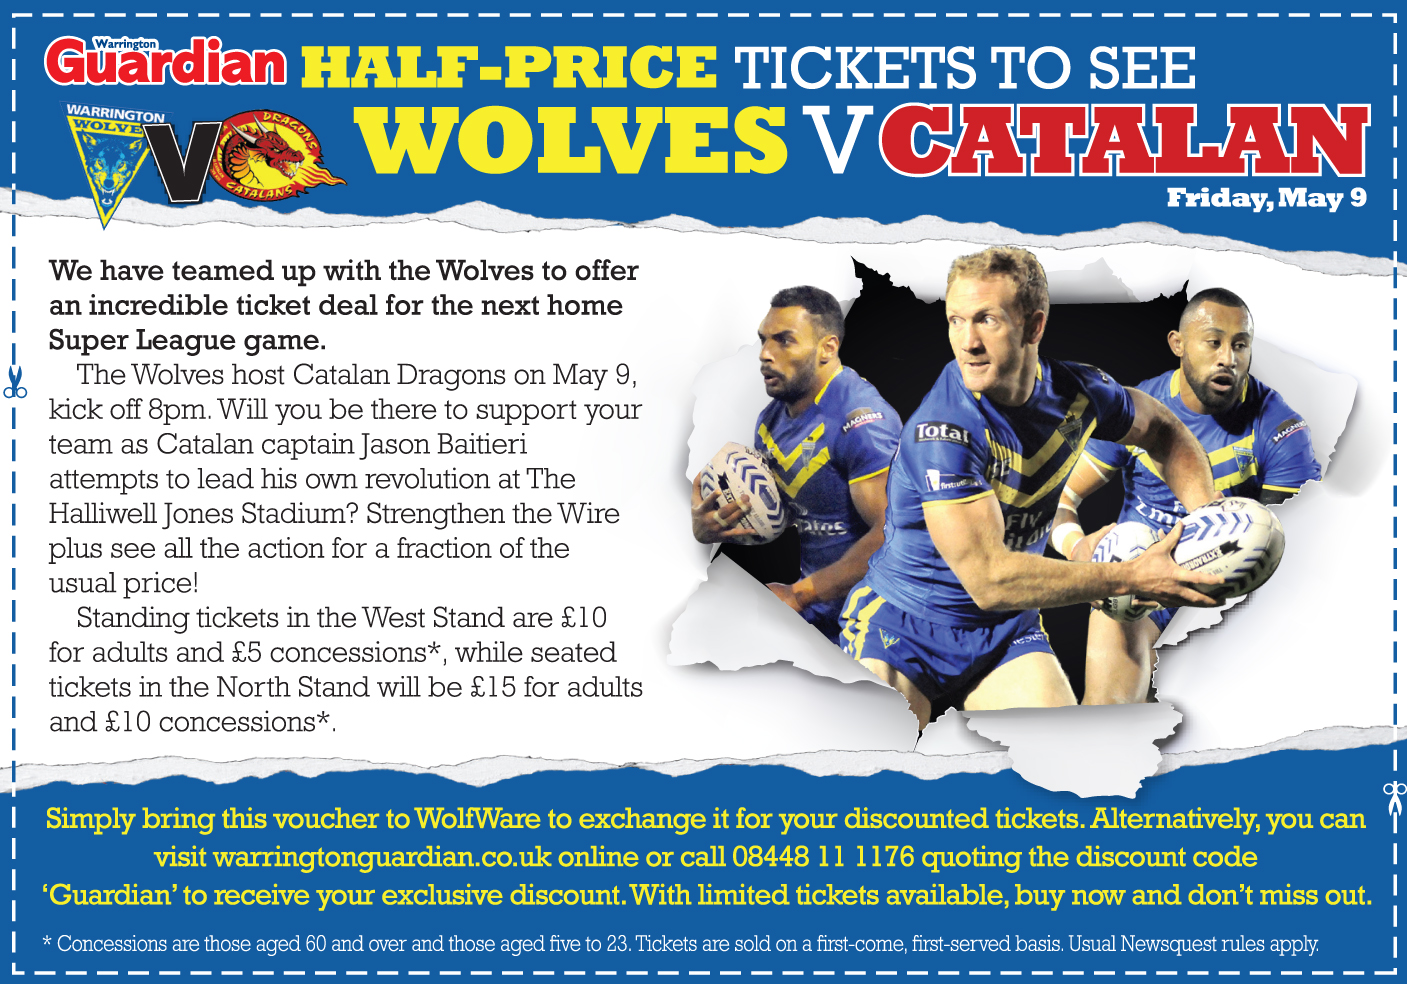 Warrington Guardian: Half-price tickets to see Wolves v Catalan